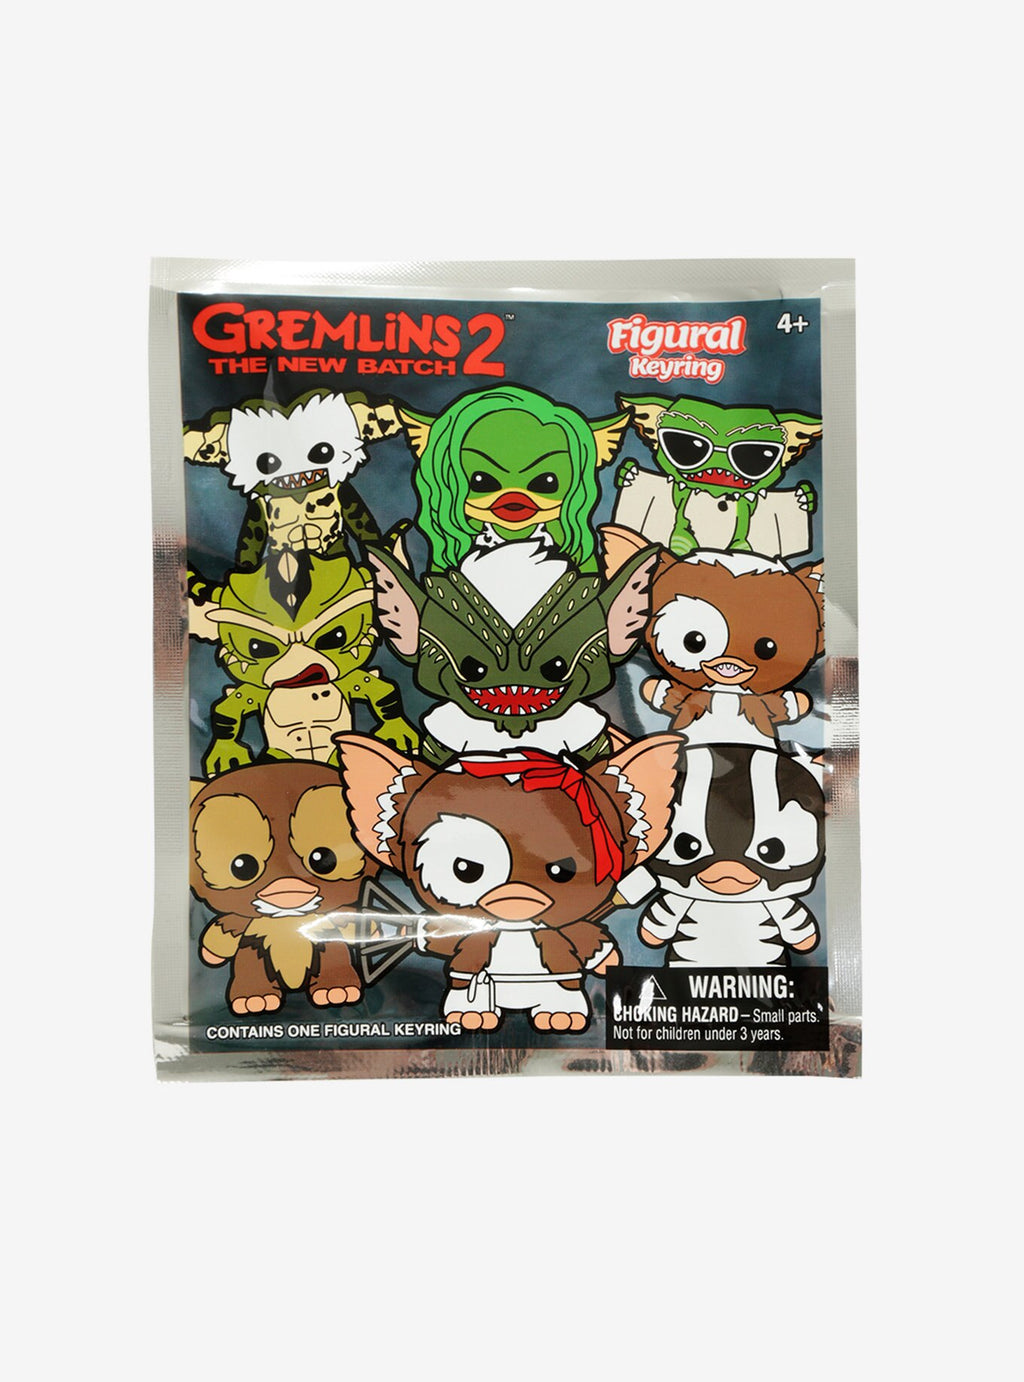 Gremlins - Gremlins 2 The New Batch Blind Bag Keychains